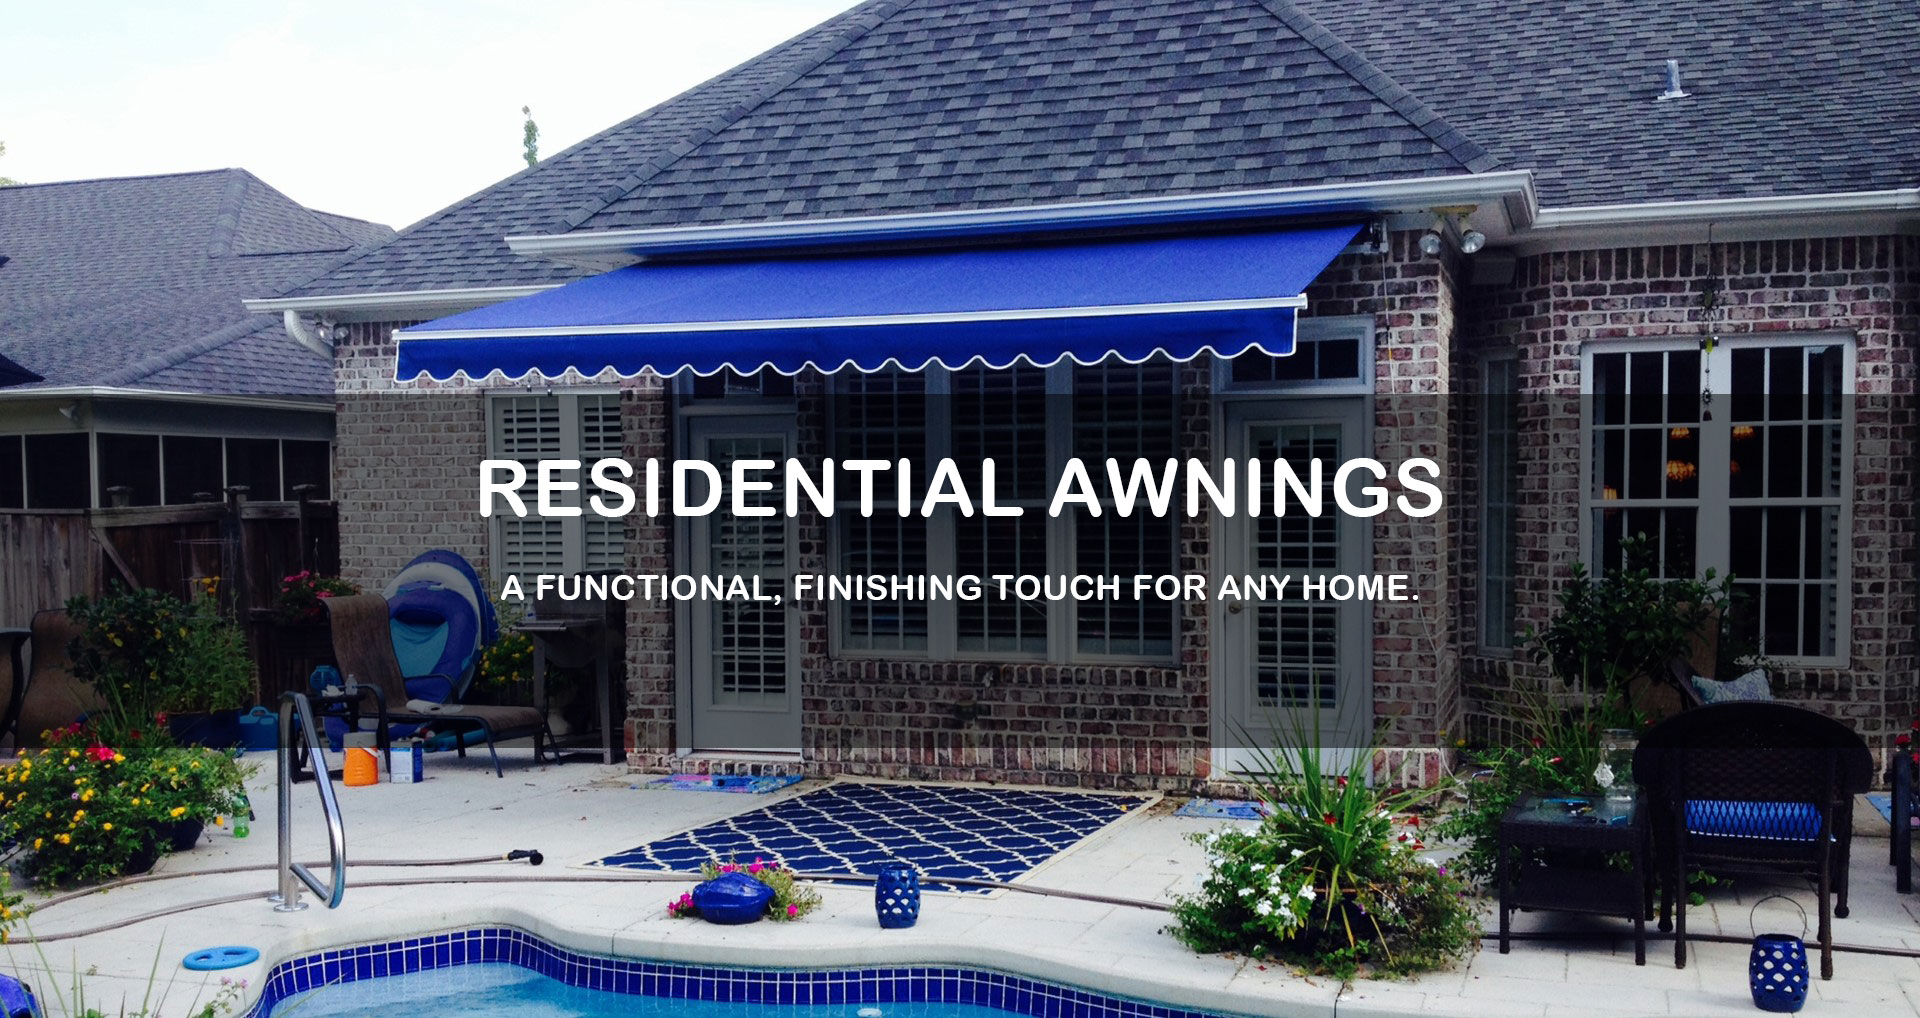 burlington winston gate awnings greensboro graphics signs salem point fabric canopies city blue high awning